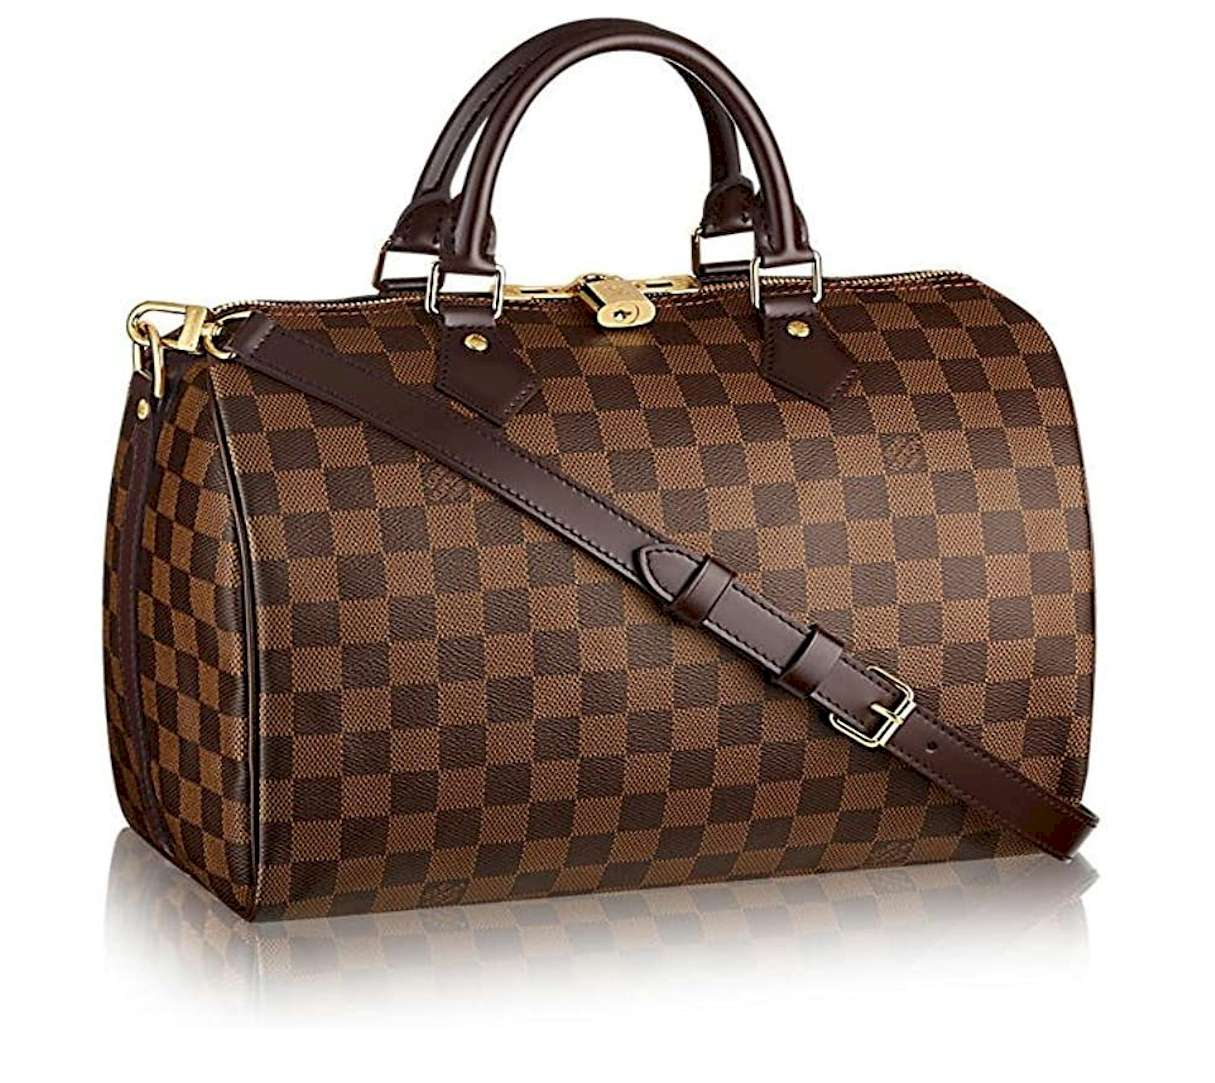 Louis Vuitton Brand - Best Products 2021 on Amazon -amazon must haves 2021